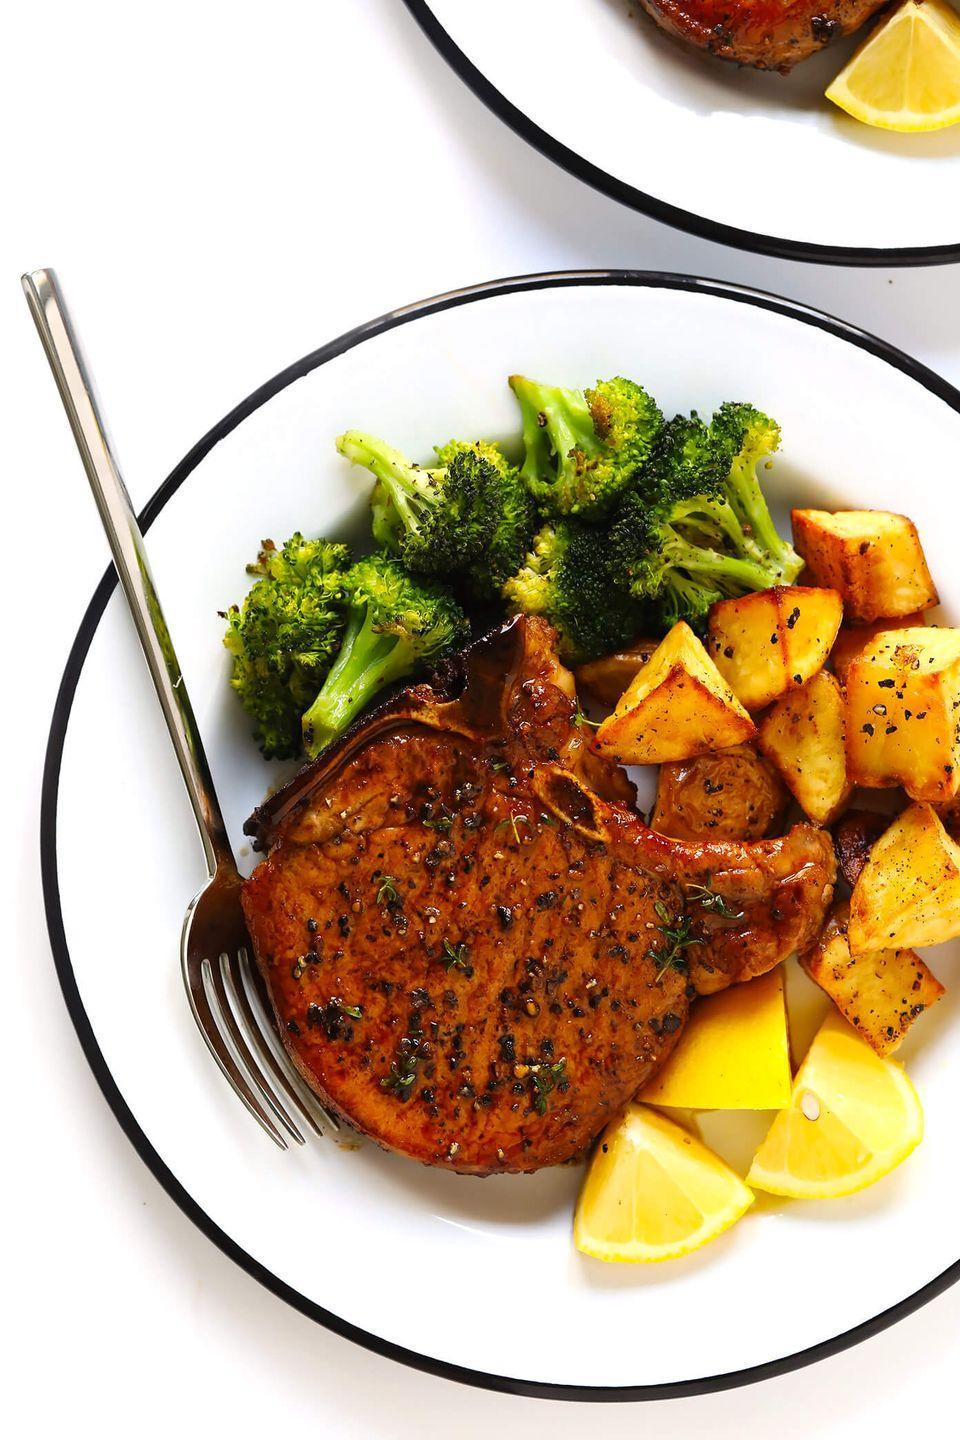 """<p>These juicy pork chops are simply seasoned but oh so delicious.</p><p><strong>Get the recipe at <a href=""""https://www.gimmesomeoven.com/baked-pork-chops/"""" rel=""""nofollow noopener"""" target=""""_blank"""" data-ylk=""""slk:Gimme Some Oven"""" class=""""link rapid-noclick-resp"""">Gimme Some Oven</a>.</strong></p>"""